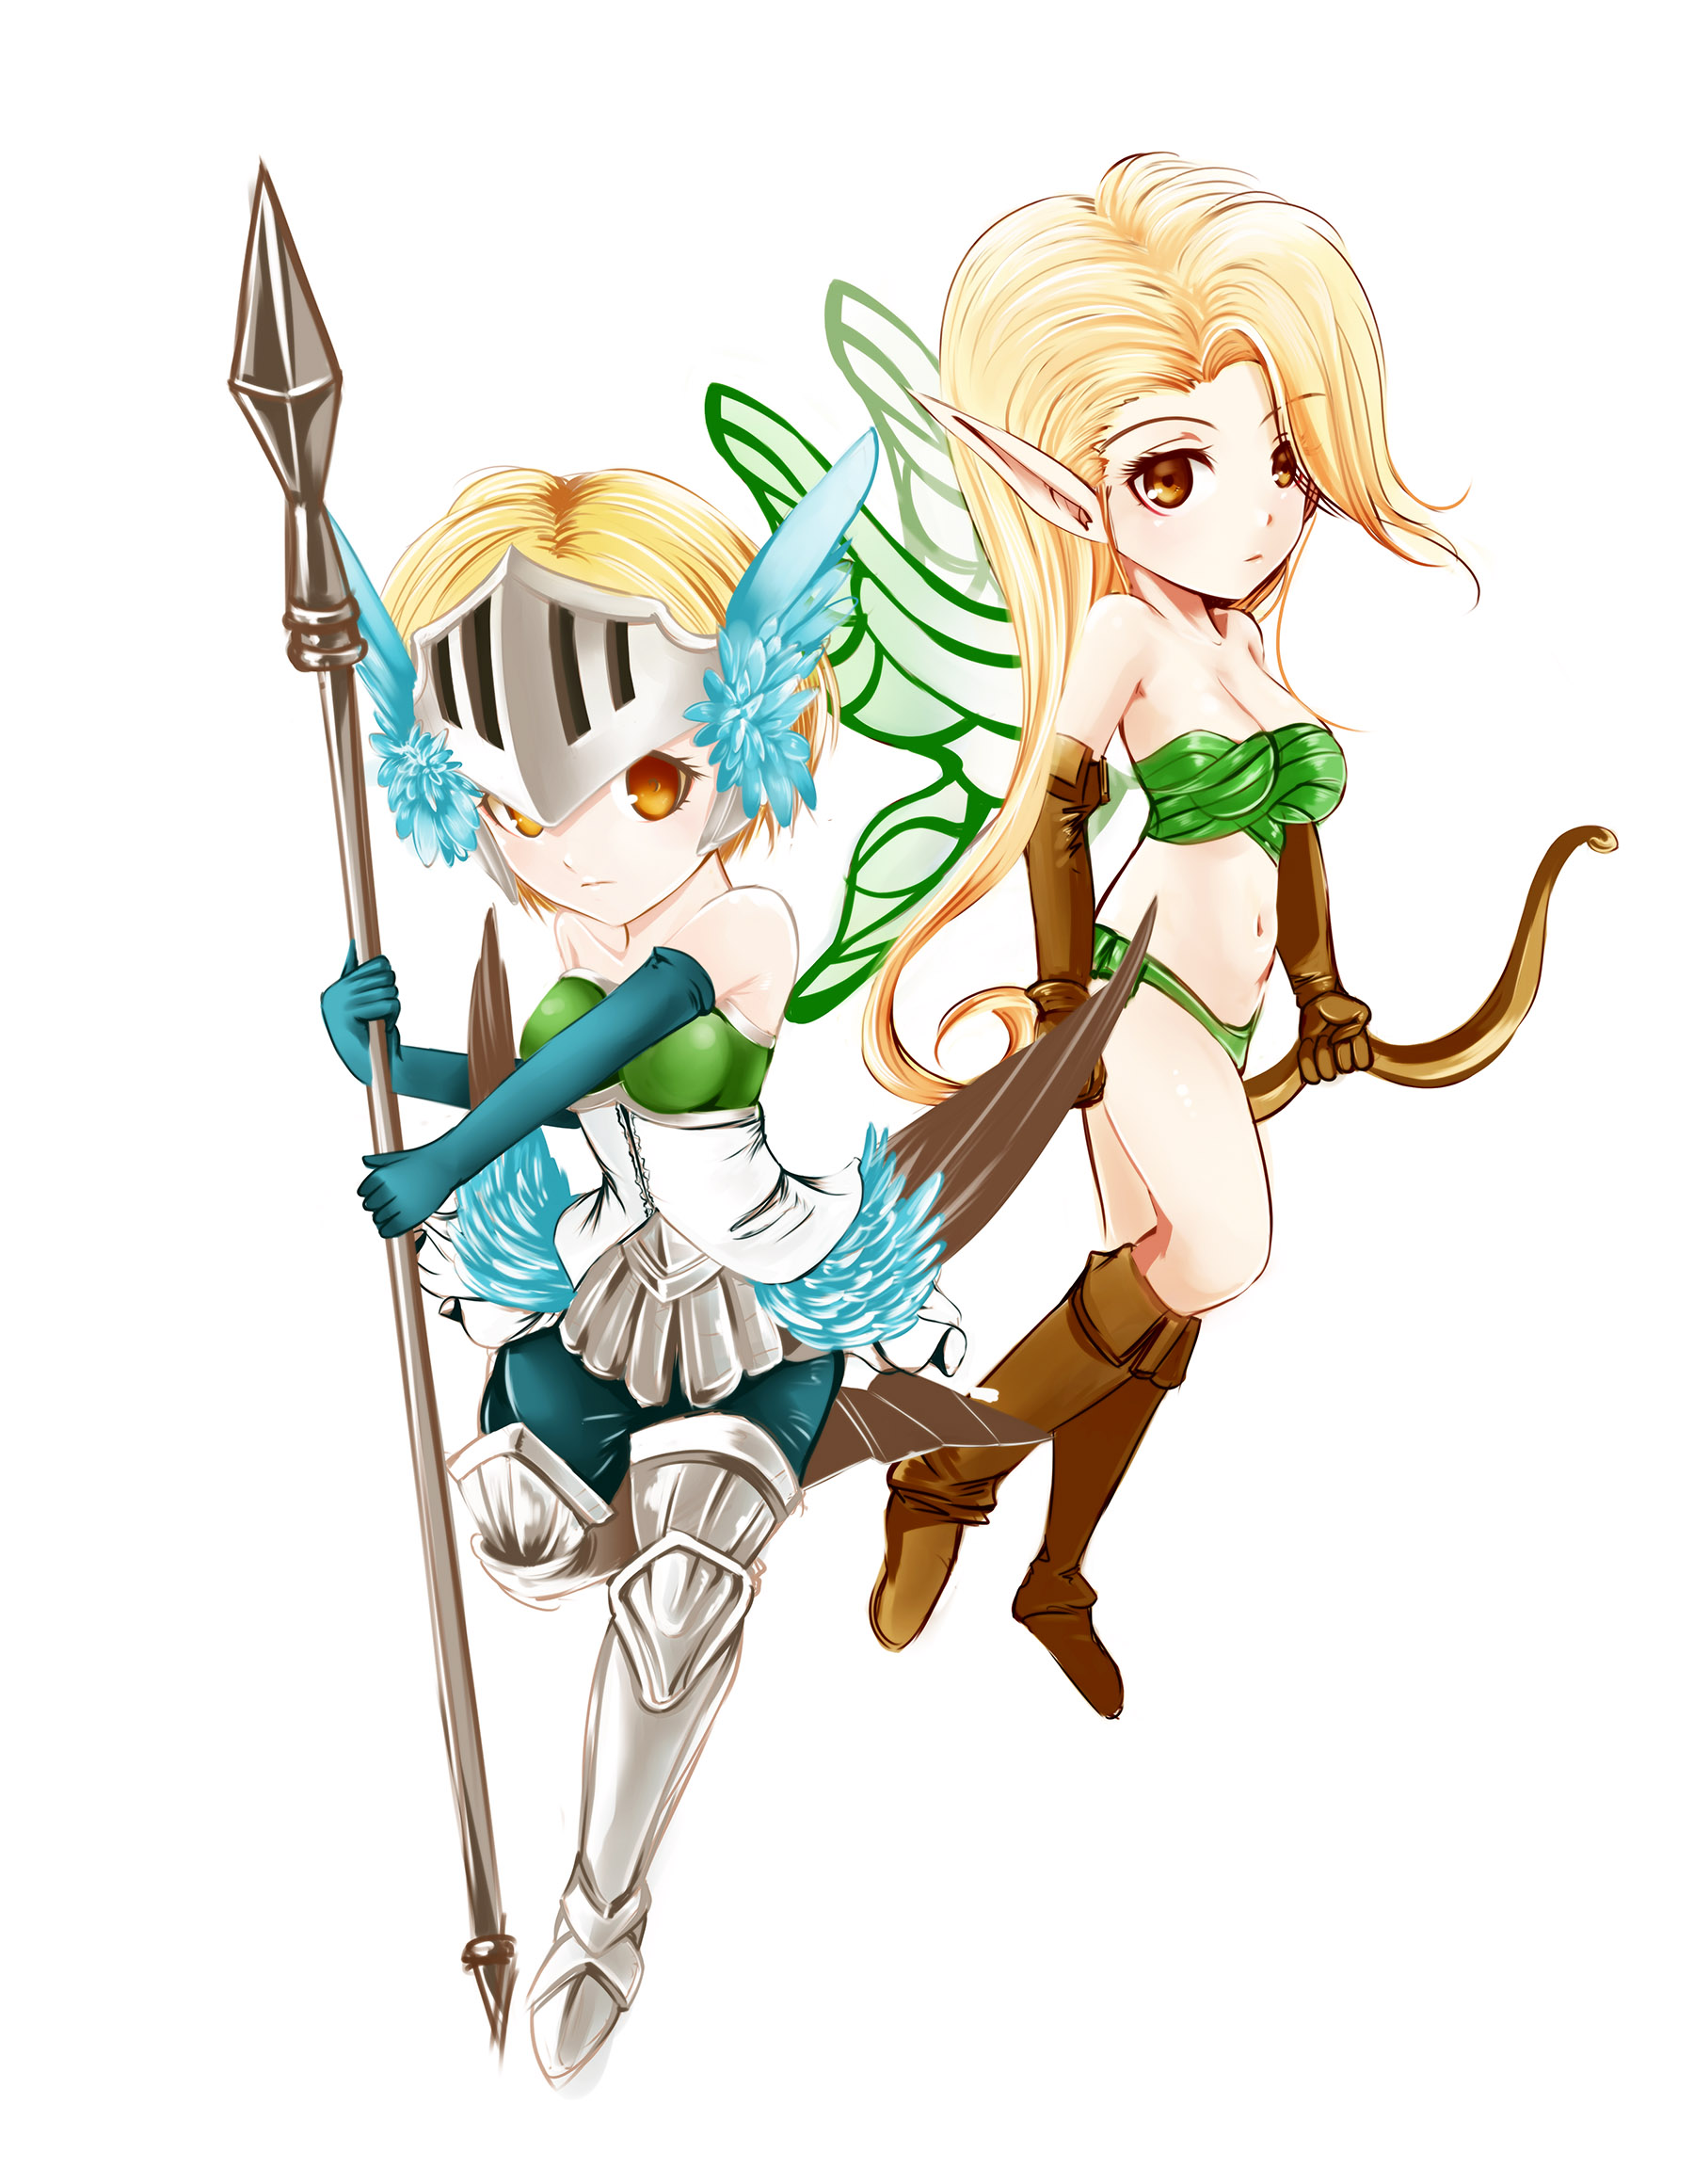 Valkyrie and Fairy - Odin Sphere